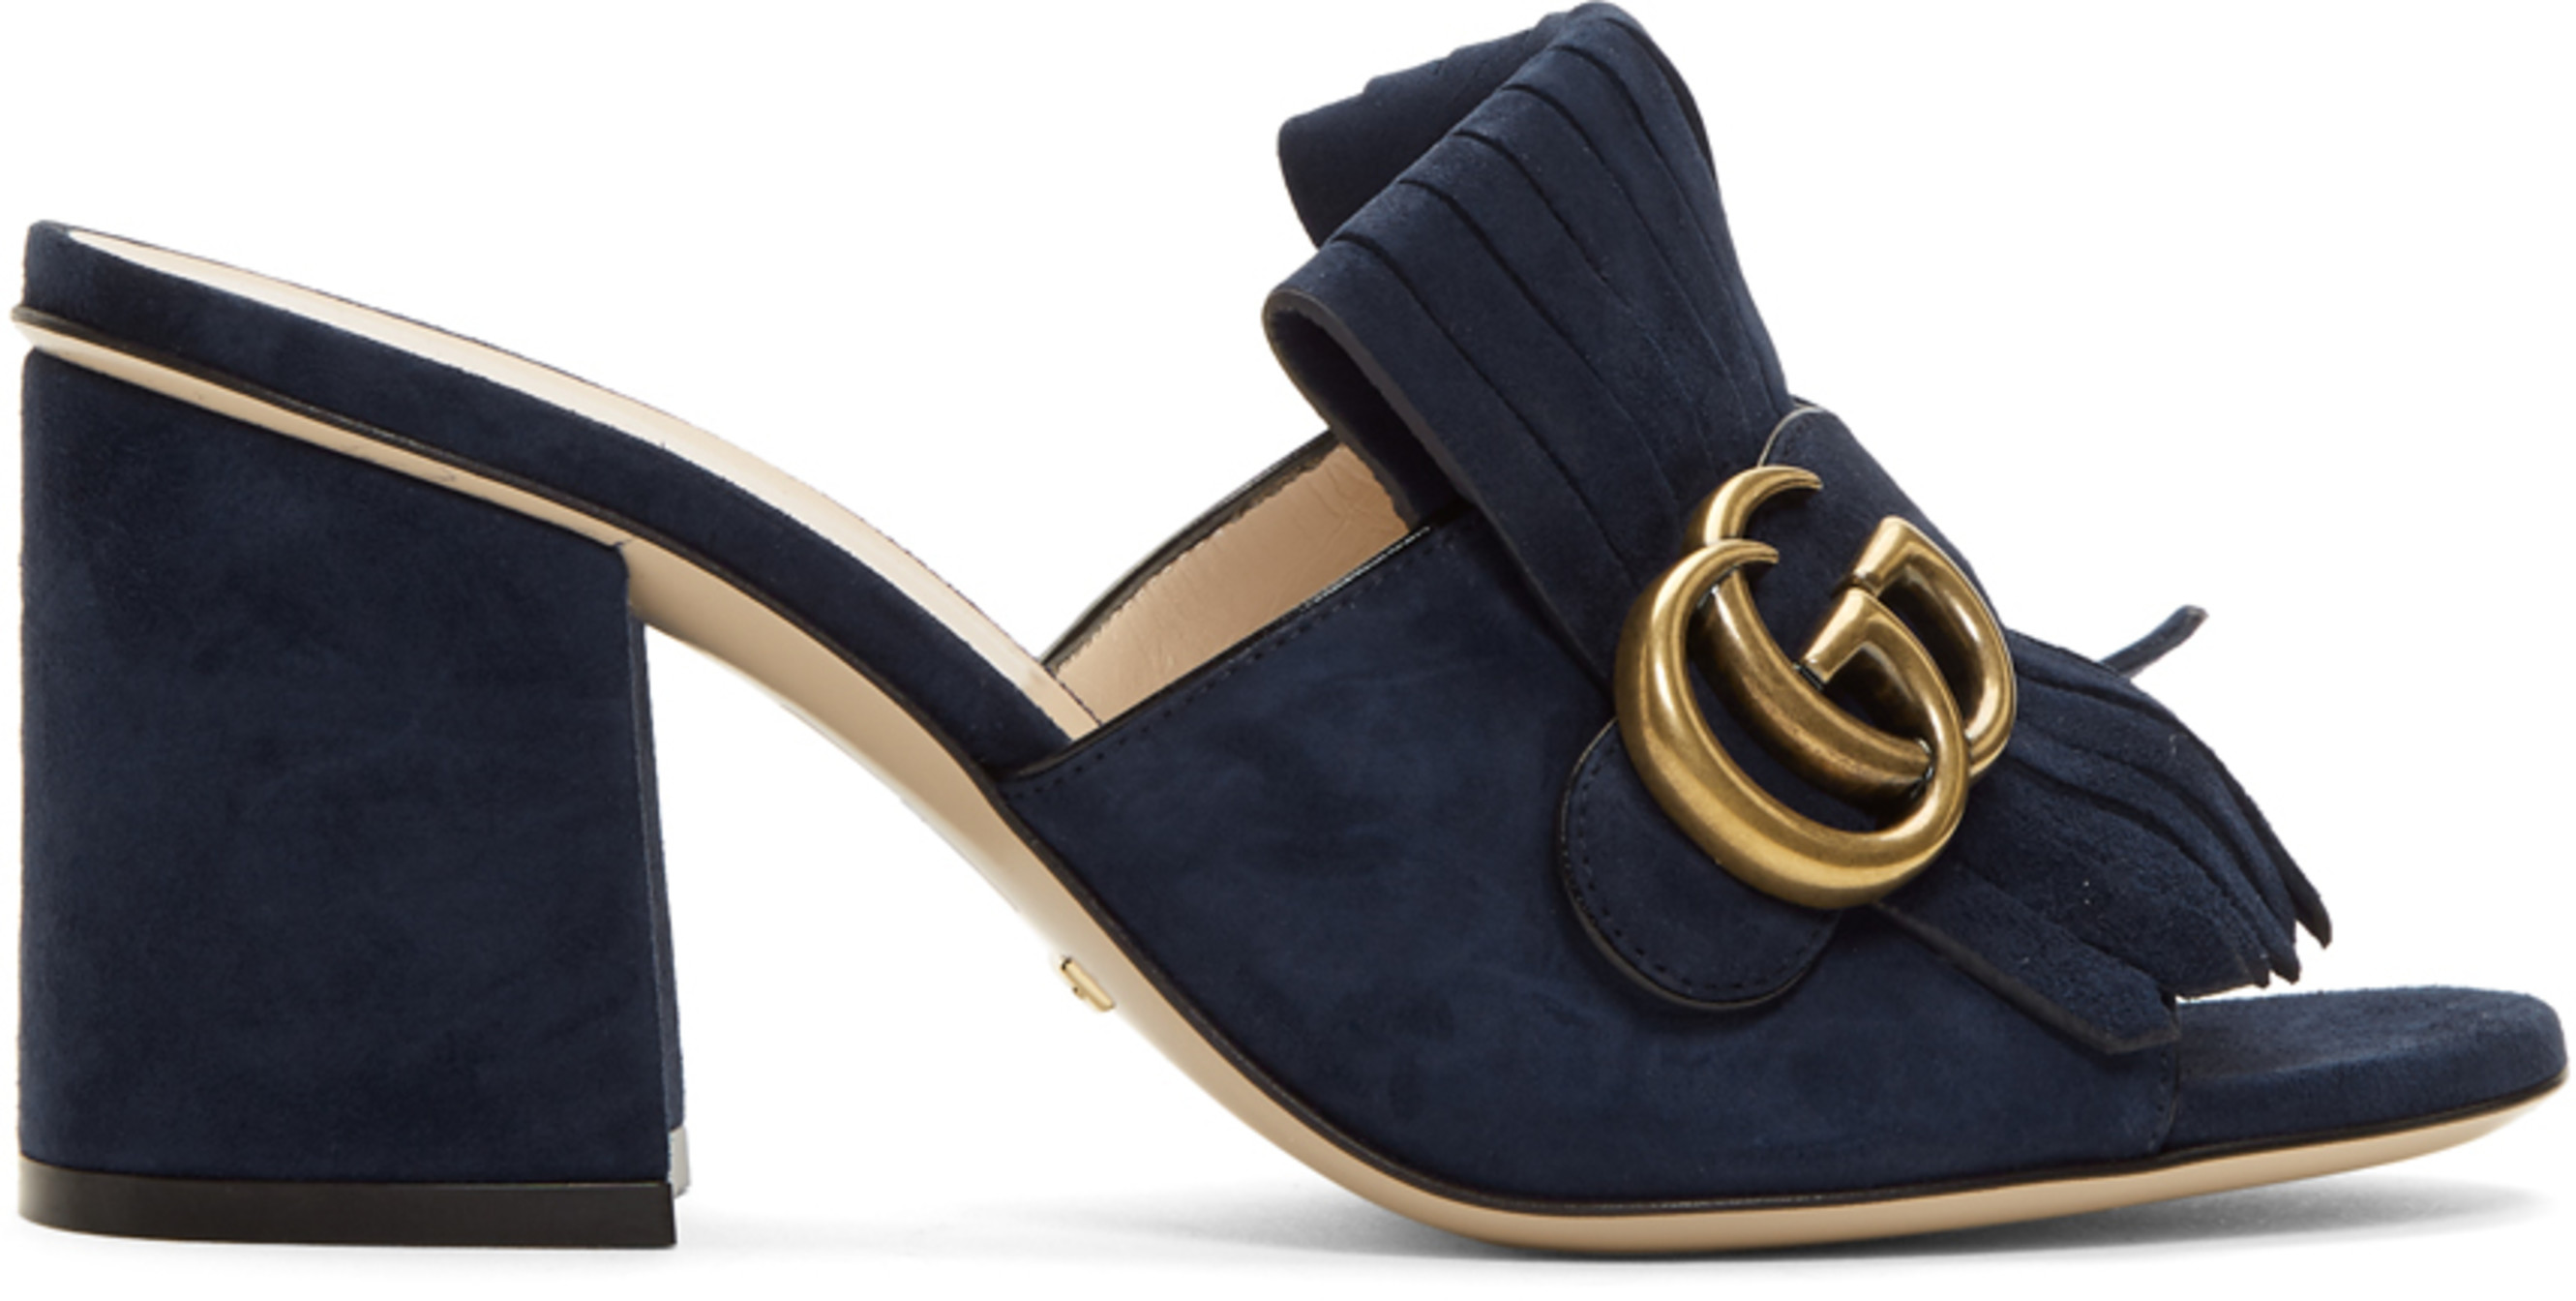 38bee2c22 Gucci sandals for Women